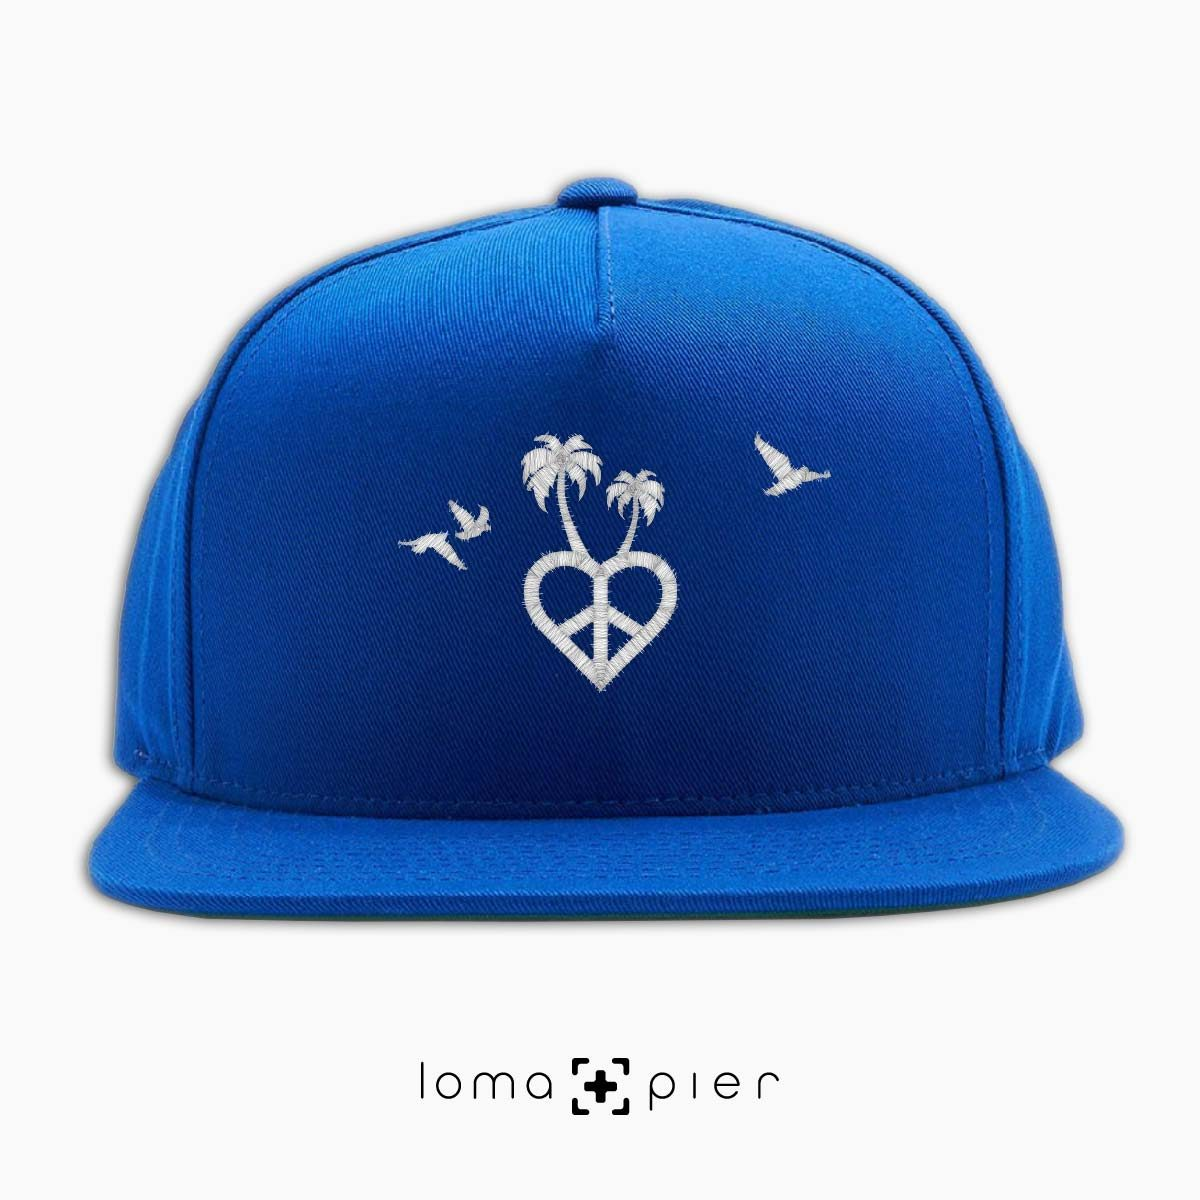 CALI VIBES icon embroidered on a royal blue classic snapback hat with white thread by loma+pier hat store